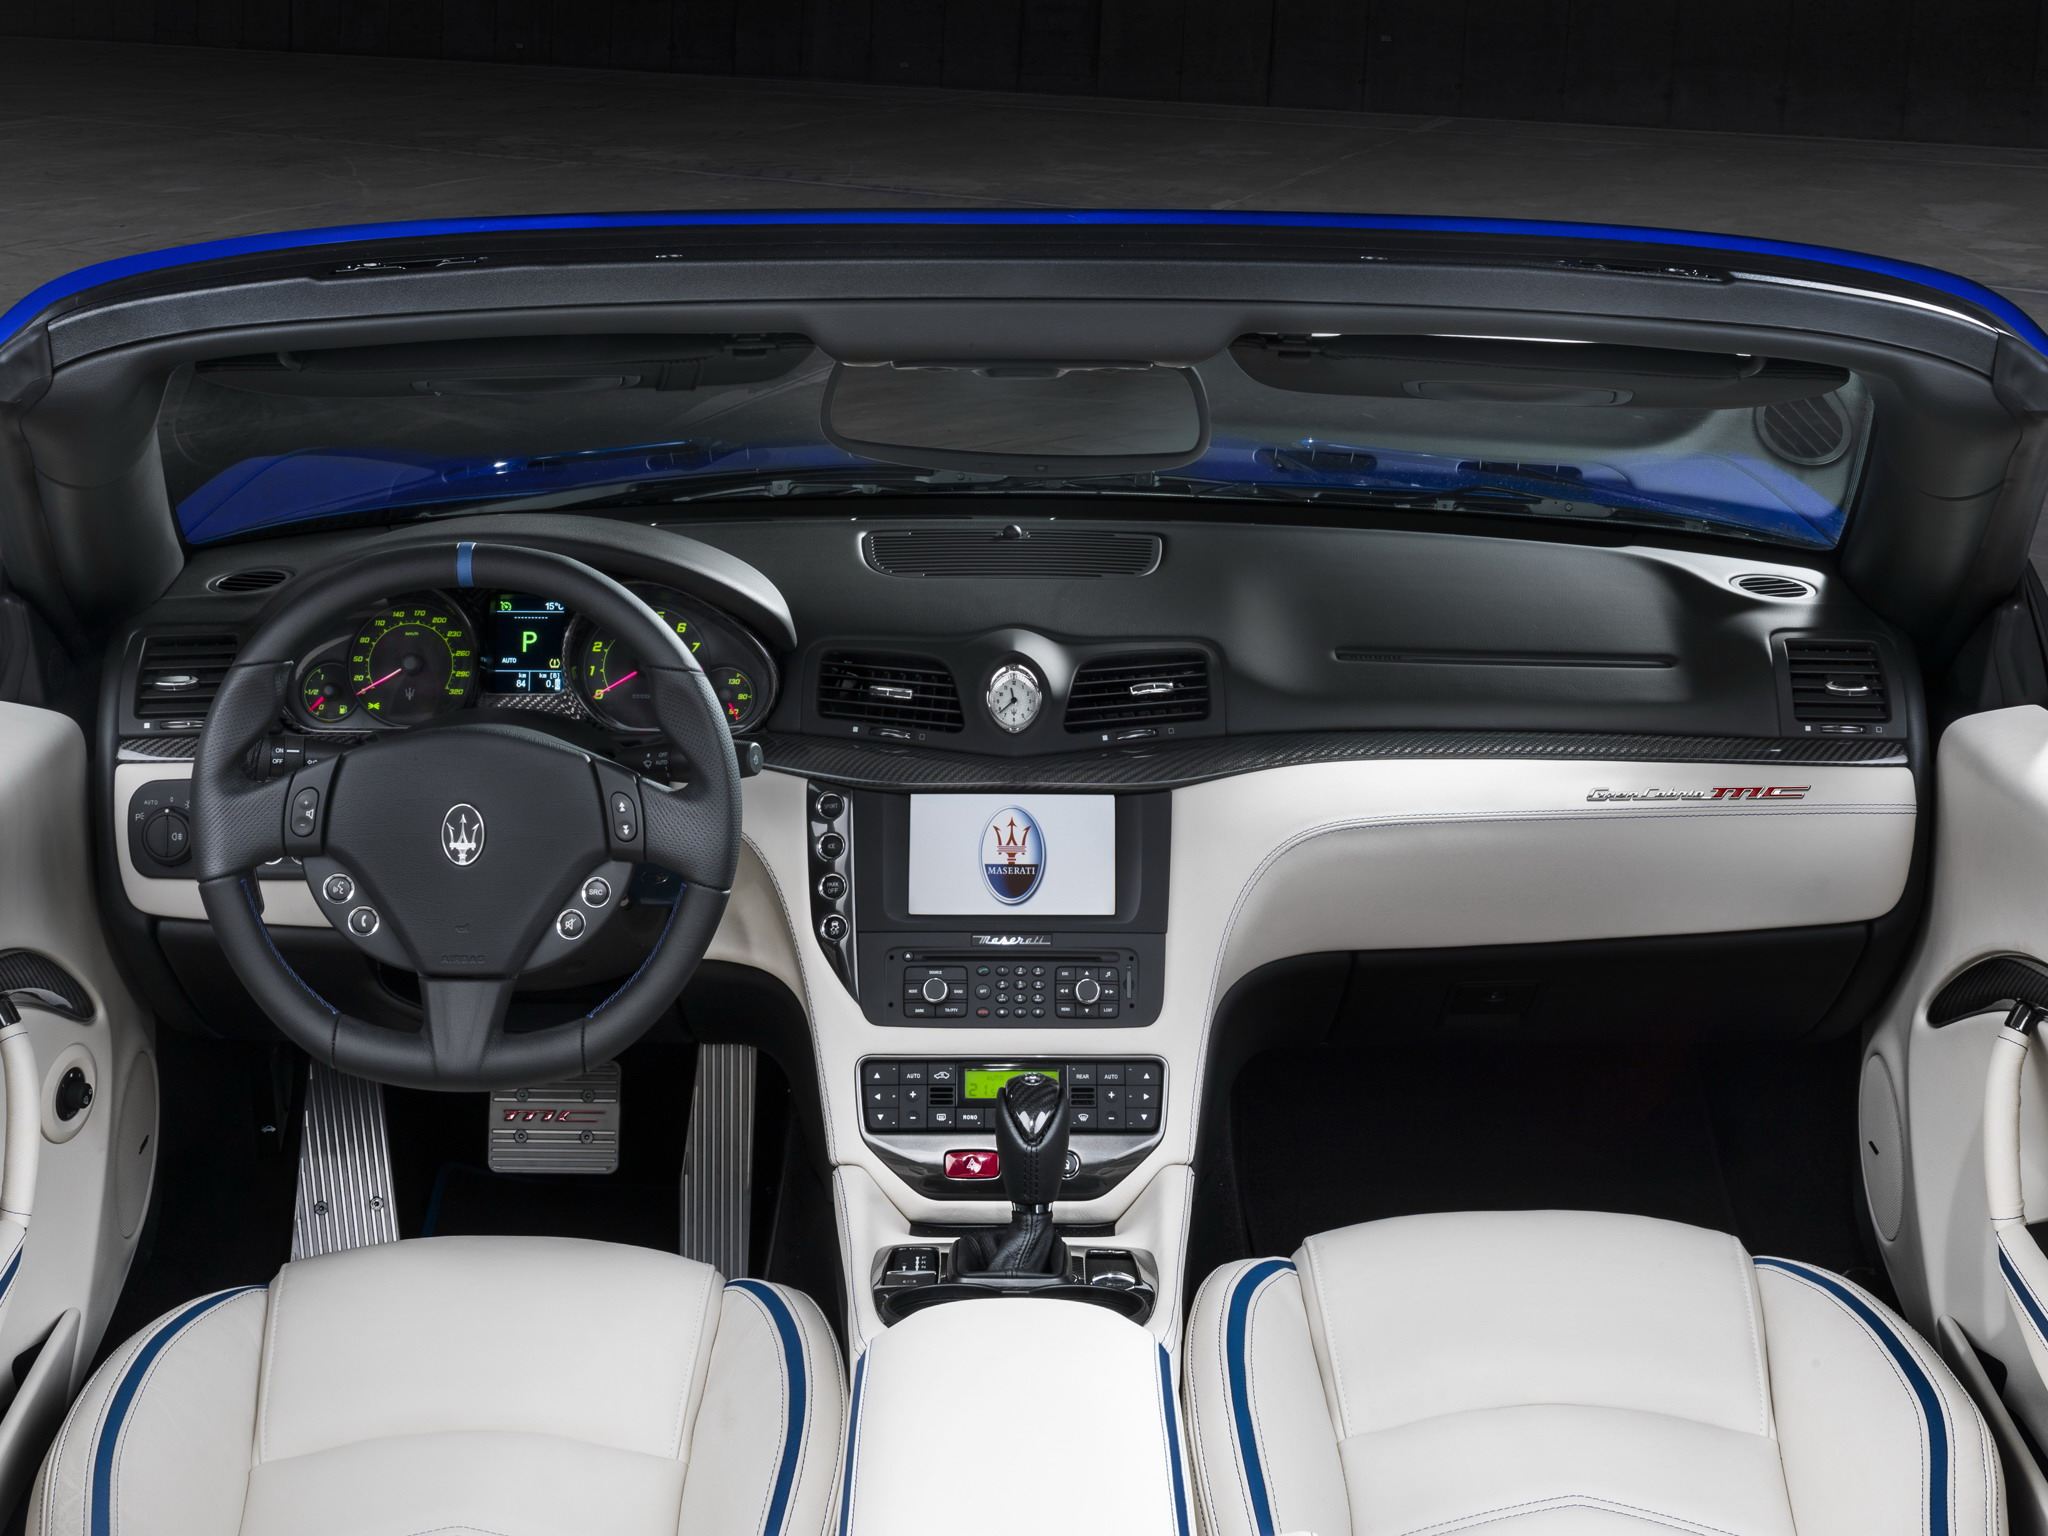 2015 maserati granturismo mc centennial edition coupe and convertible review top speed. Black Bedroom Furniture Sets. Home Design Ideas